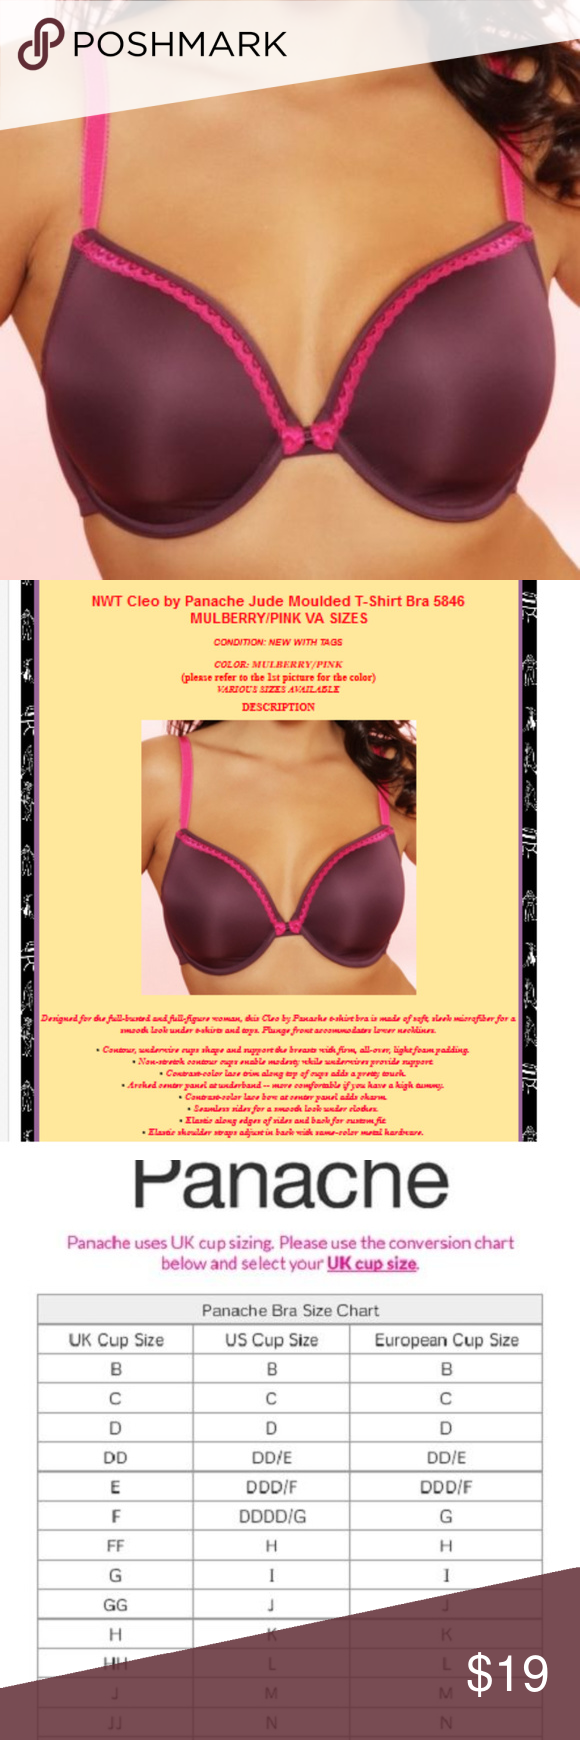 9eb0dbfdc5e Cleo by Panache Jude Moulded T-Shirt Bra 5846 THIS BRA IS VARIOUS ...